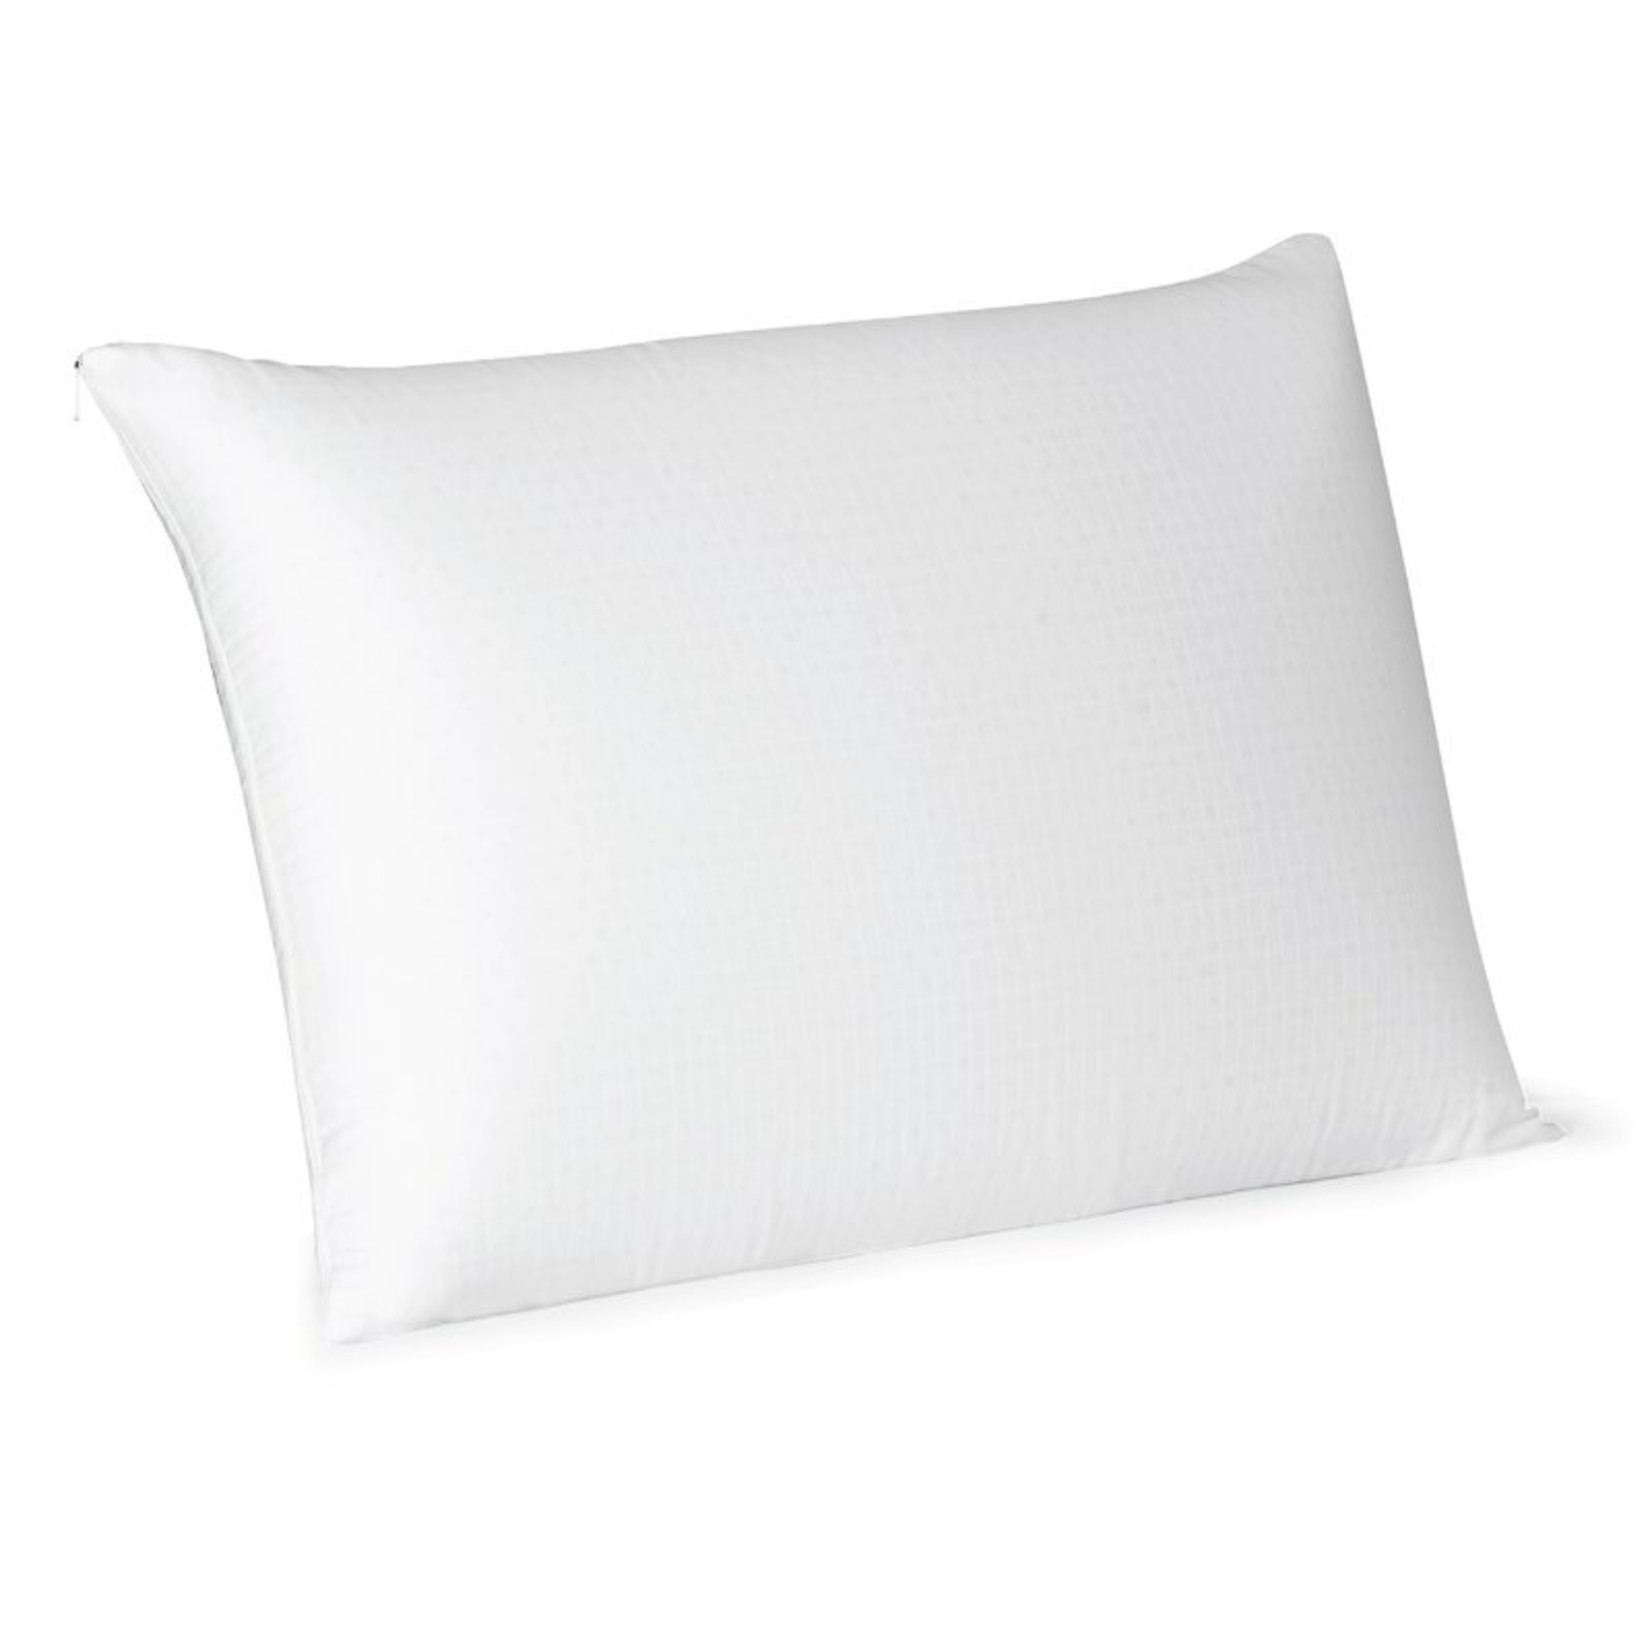 *King - Beautyrest Talalay Latex Plush Support Pillow - Final Sale